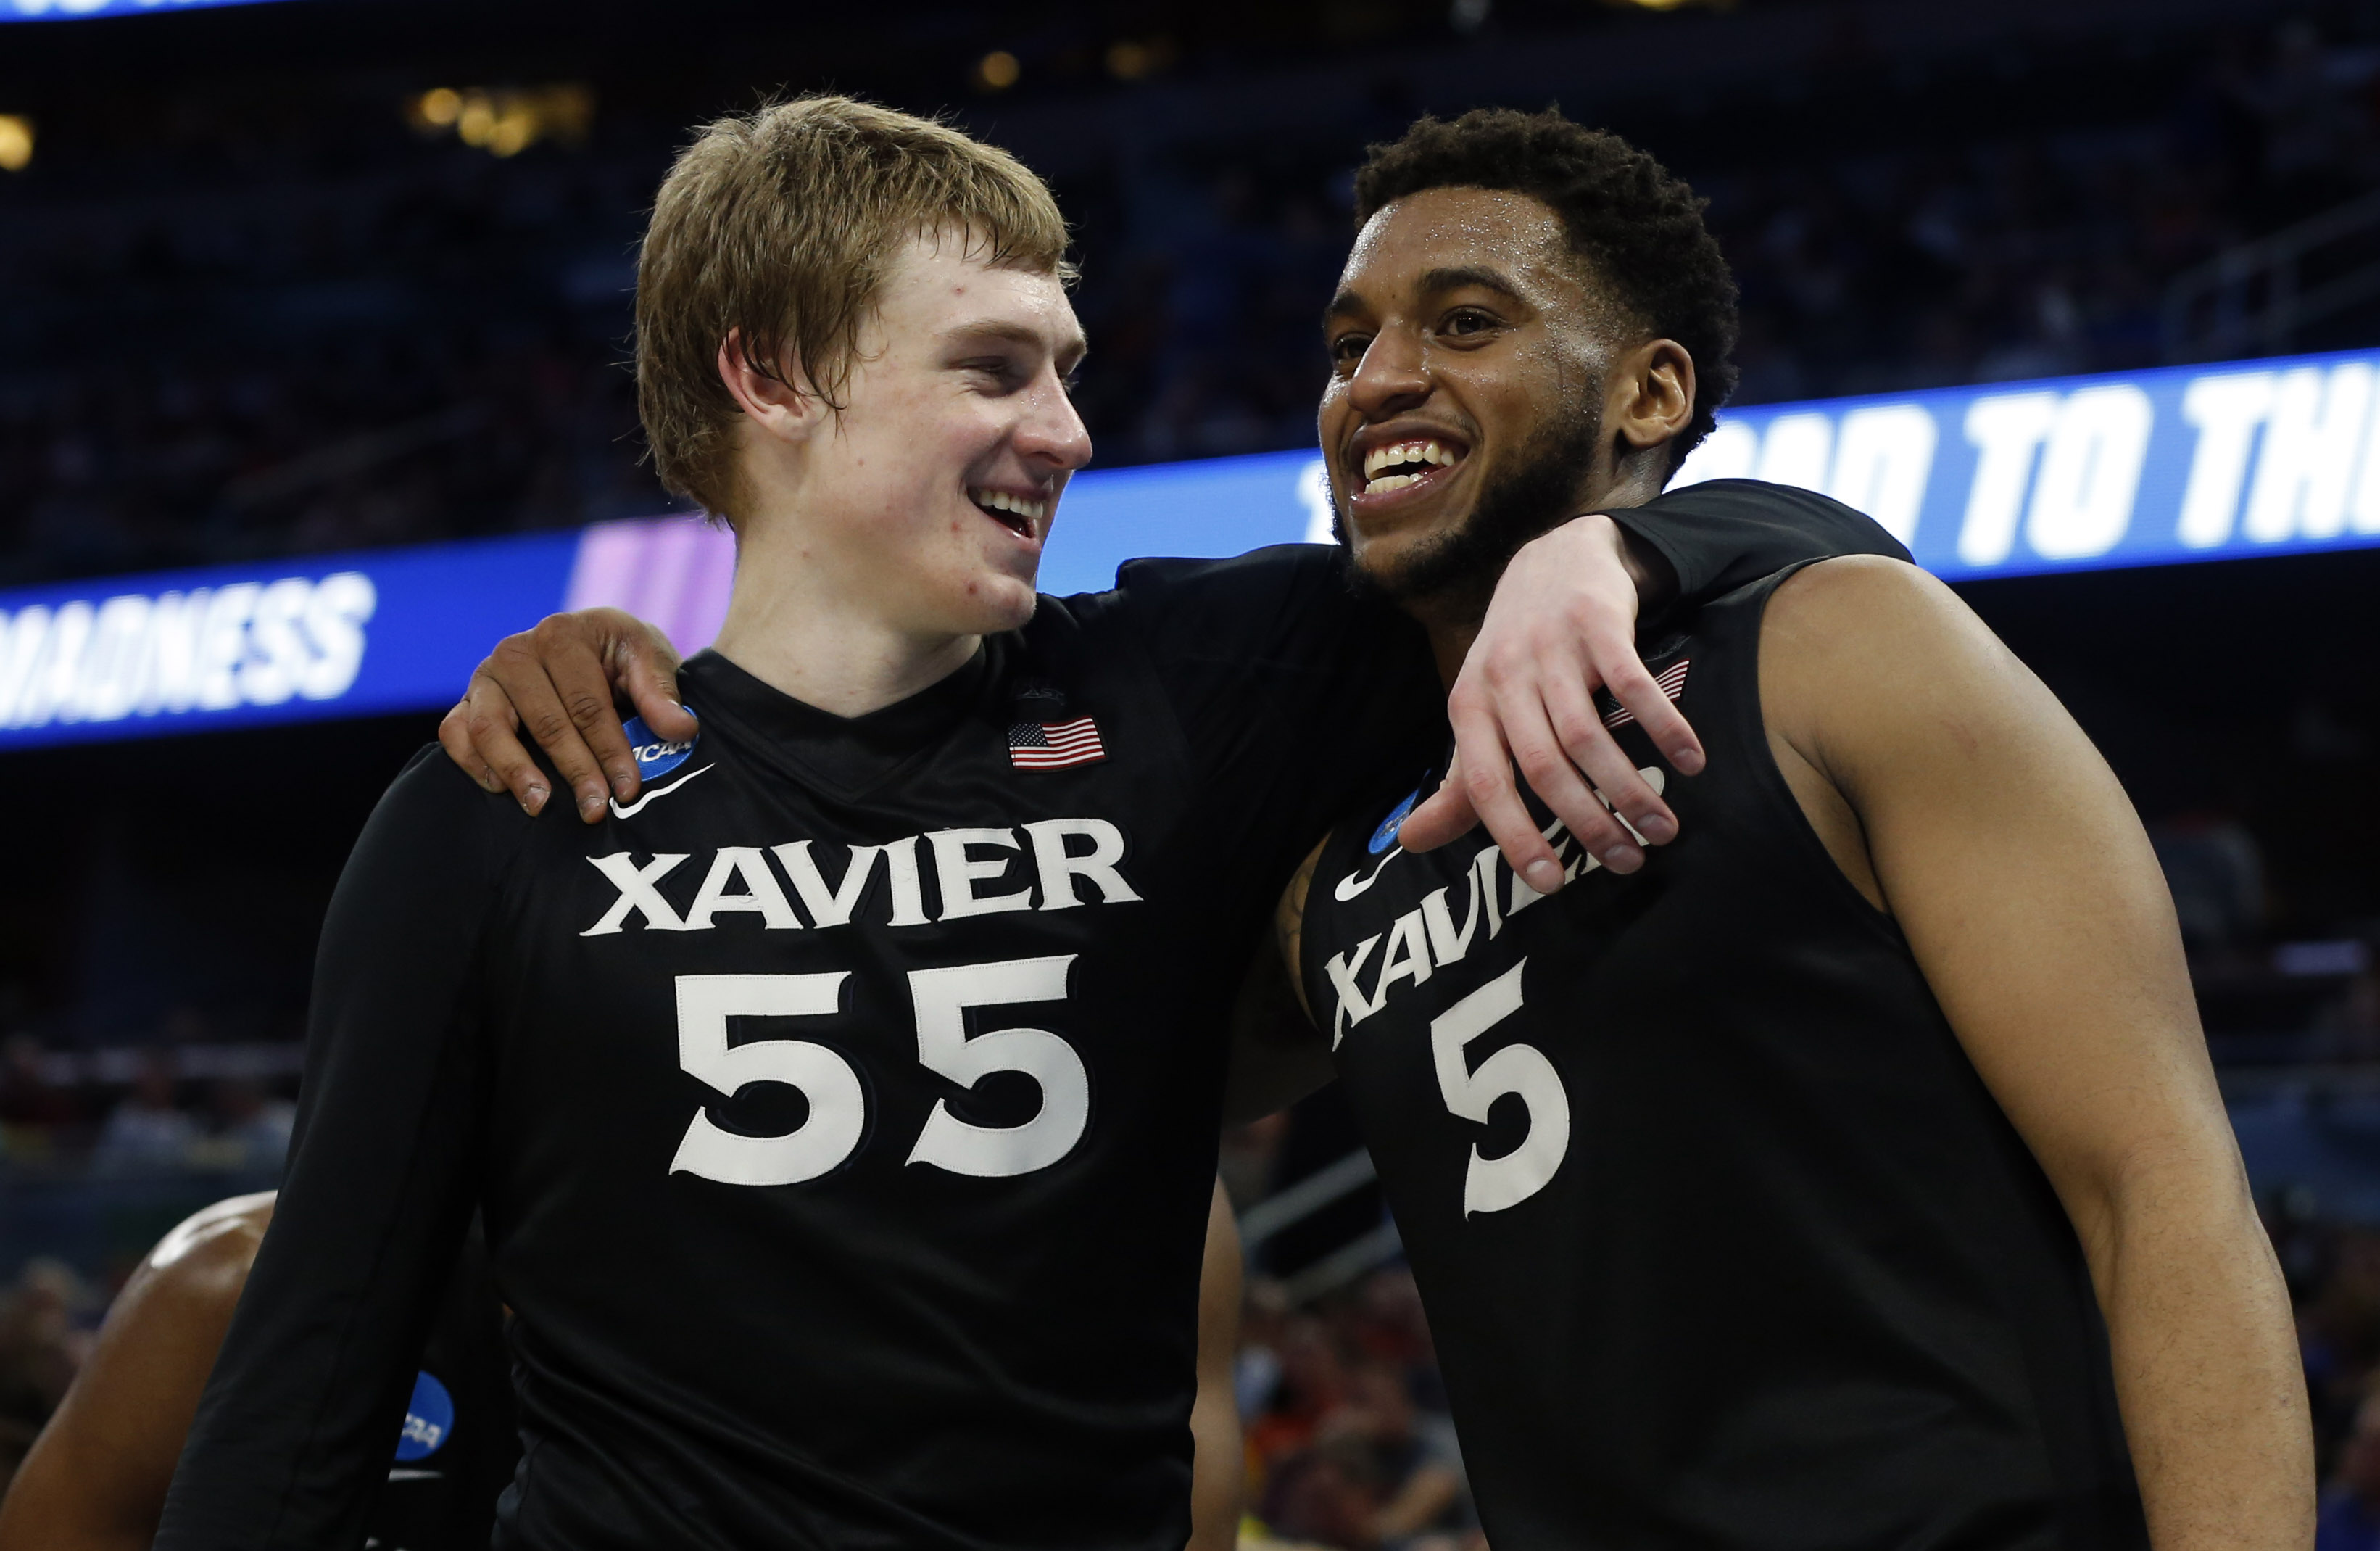 9953987-ncaa-basketball-ncaa-tournament-second-round-florida-state-vs-xavier